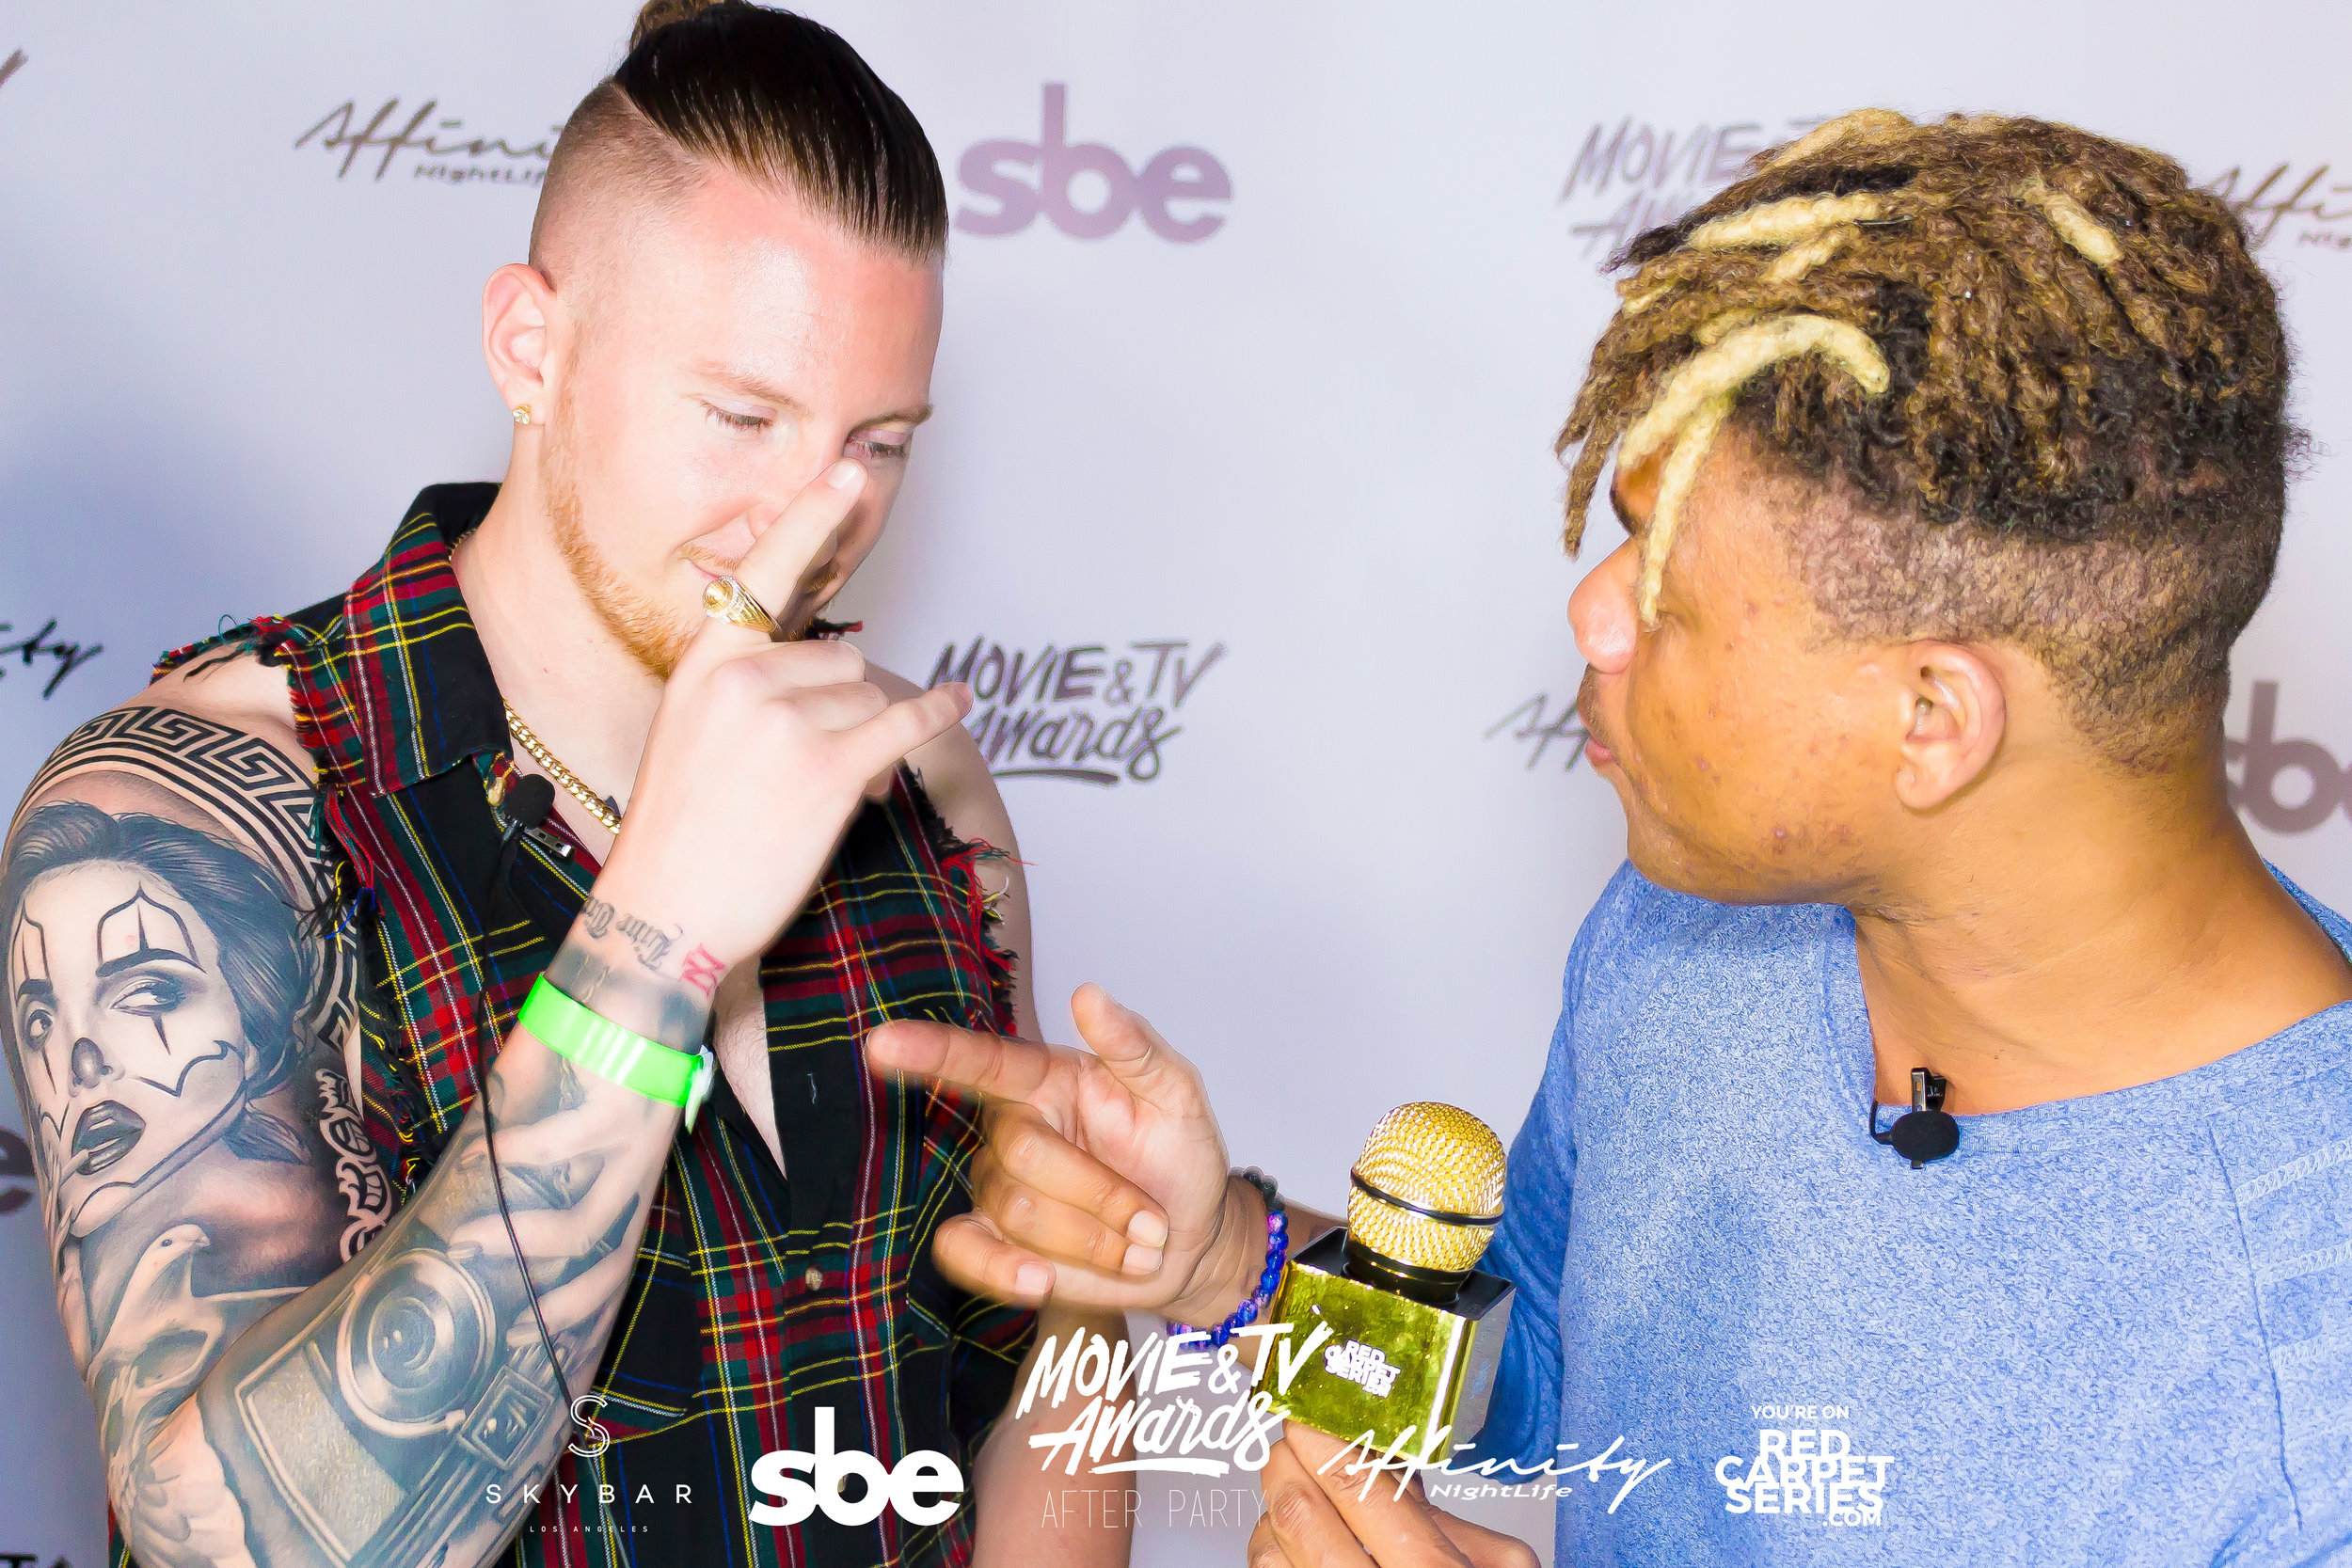 Affinity Nightlife MTV Movie & TV Awards After Party - Skybar at Mondrian - 06-15-19 - Vol. 1_134.jpg